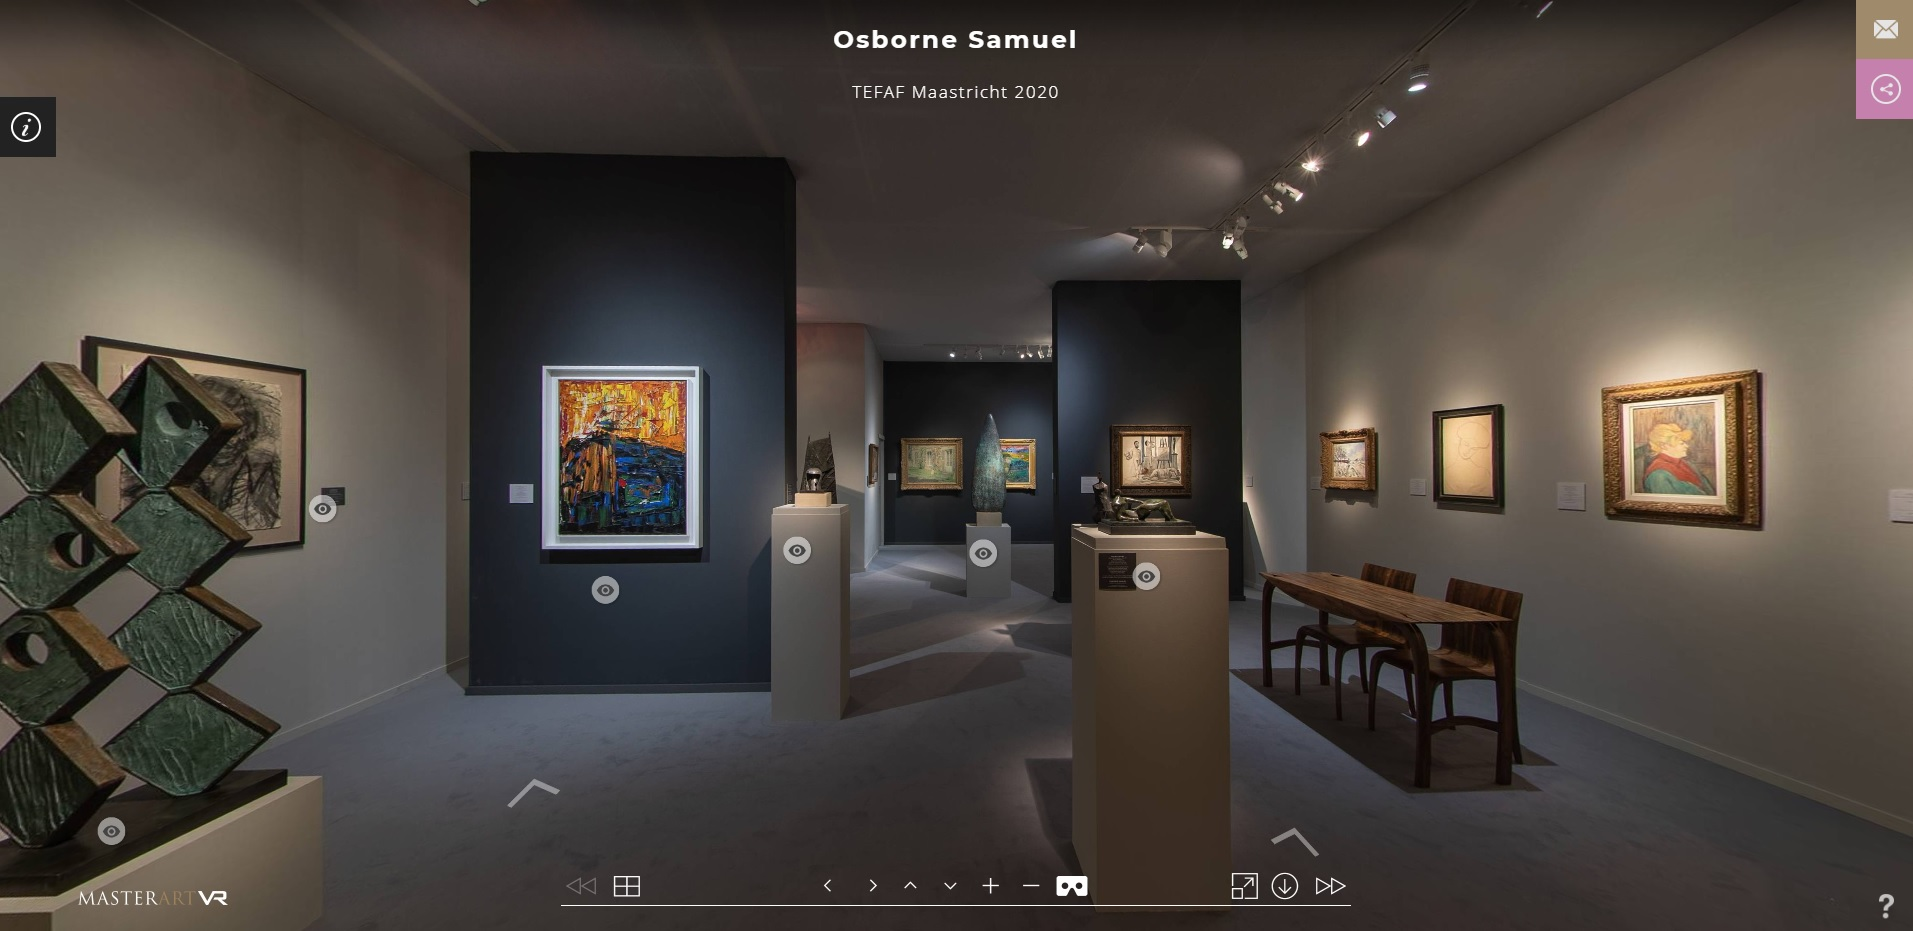 TEFAF 2020 Virtual Tour